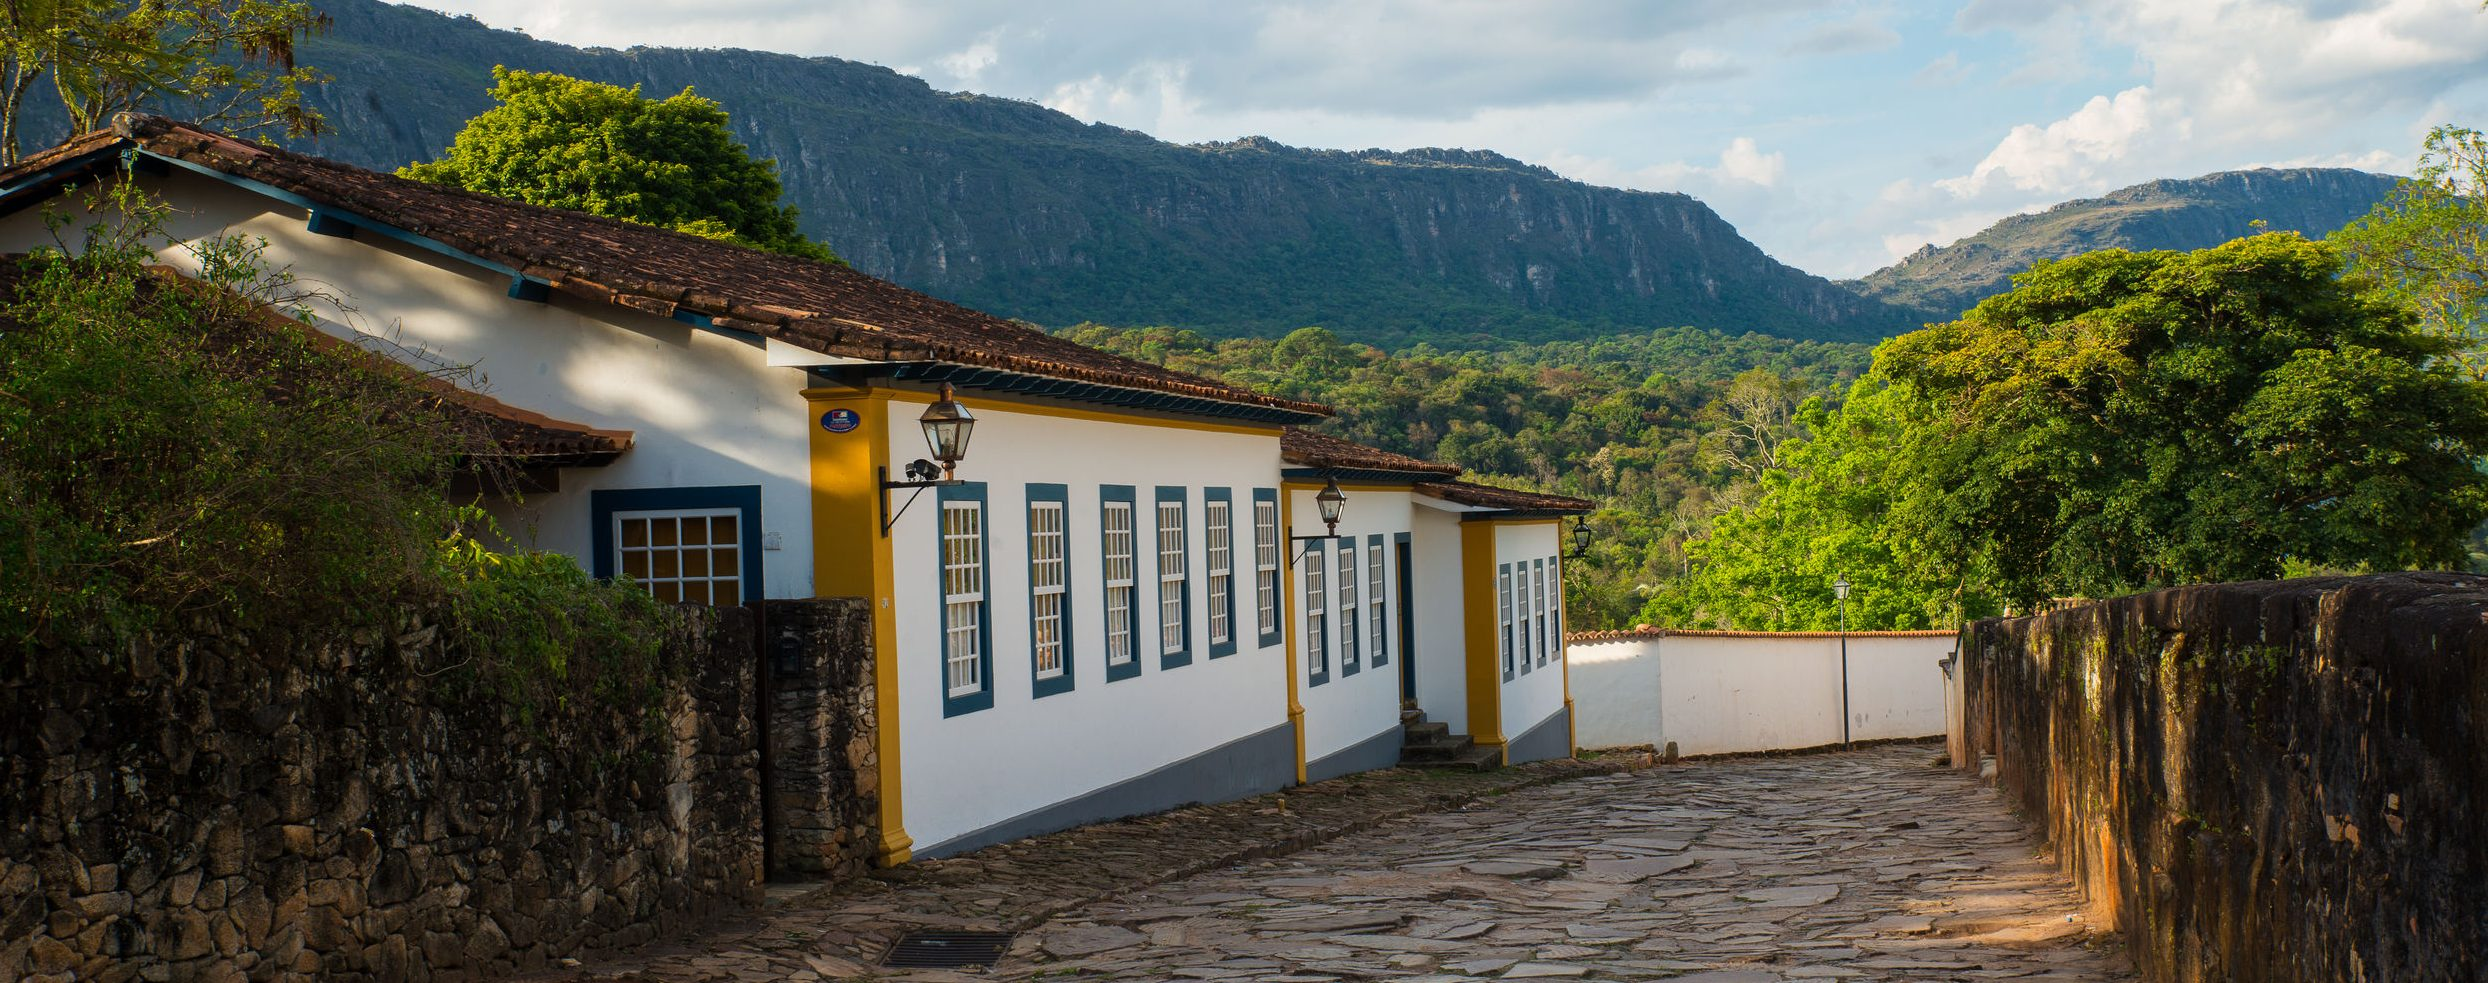 A paved road in Minas Gerais with a mountain in the background.